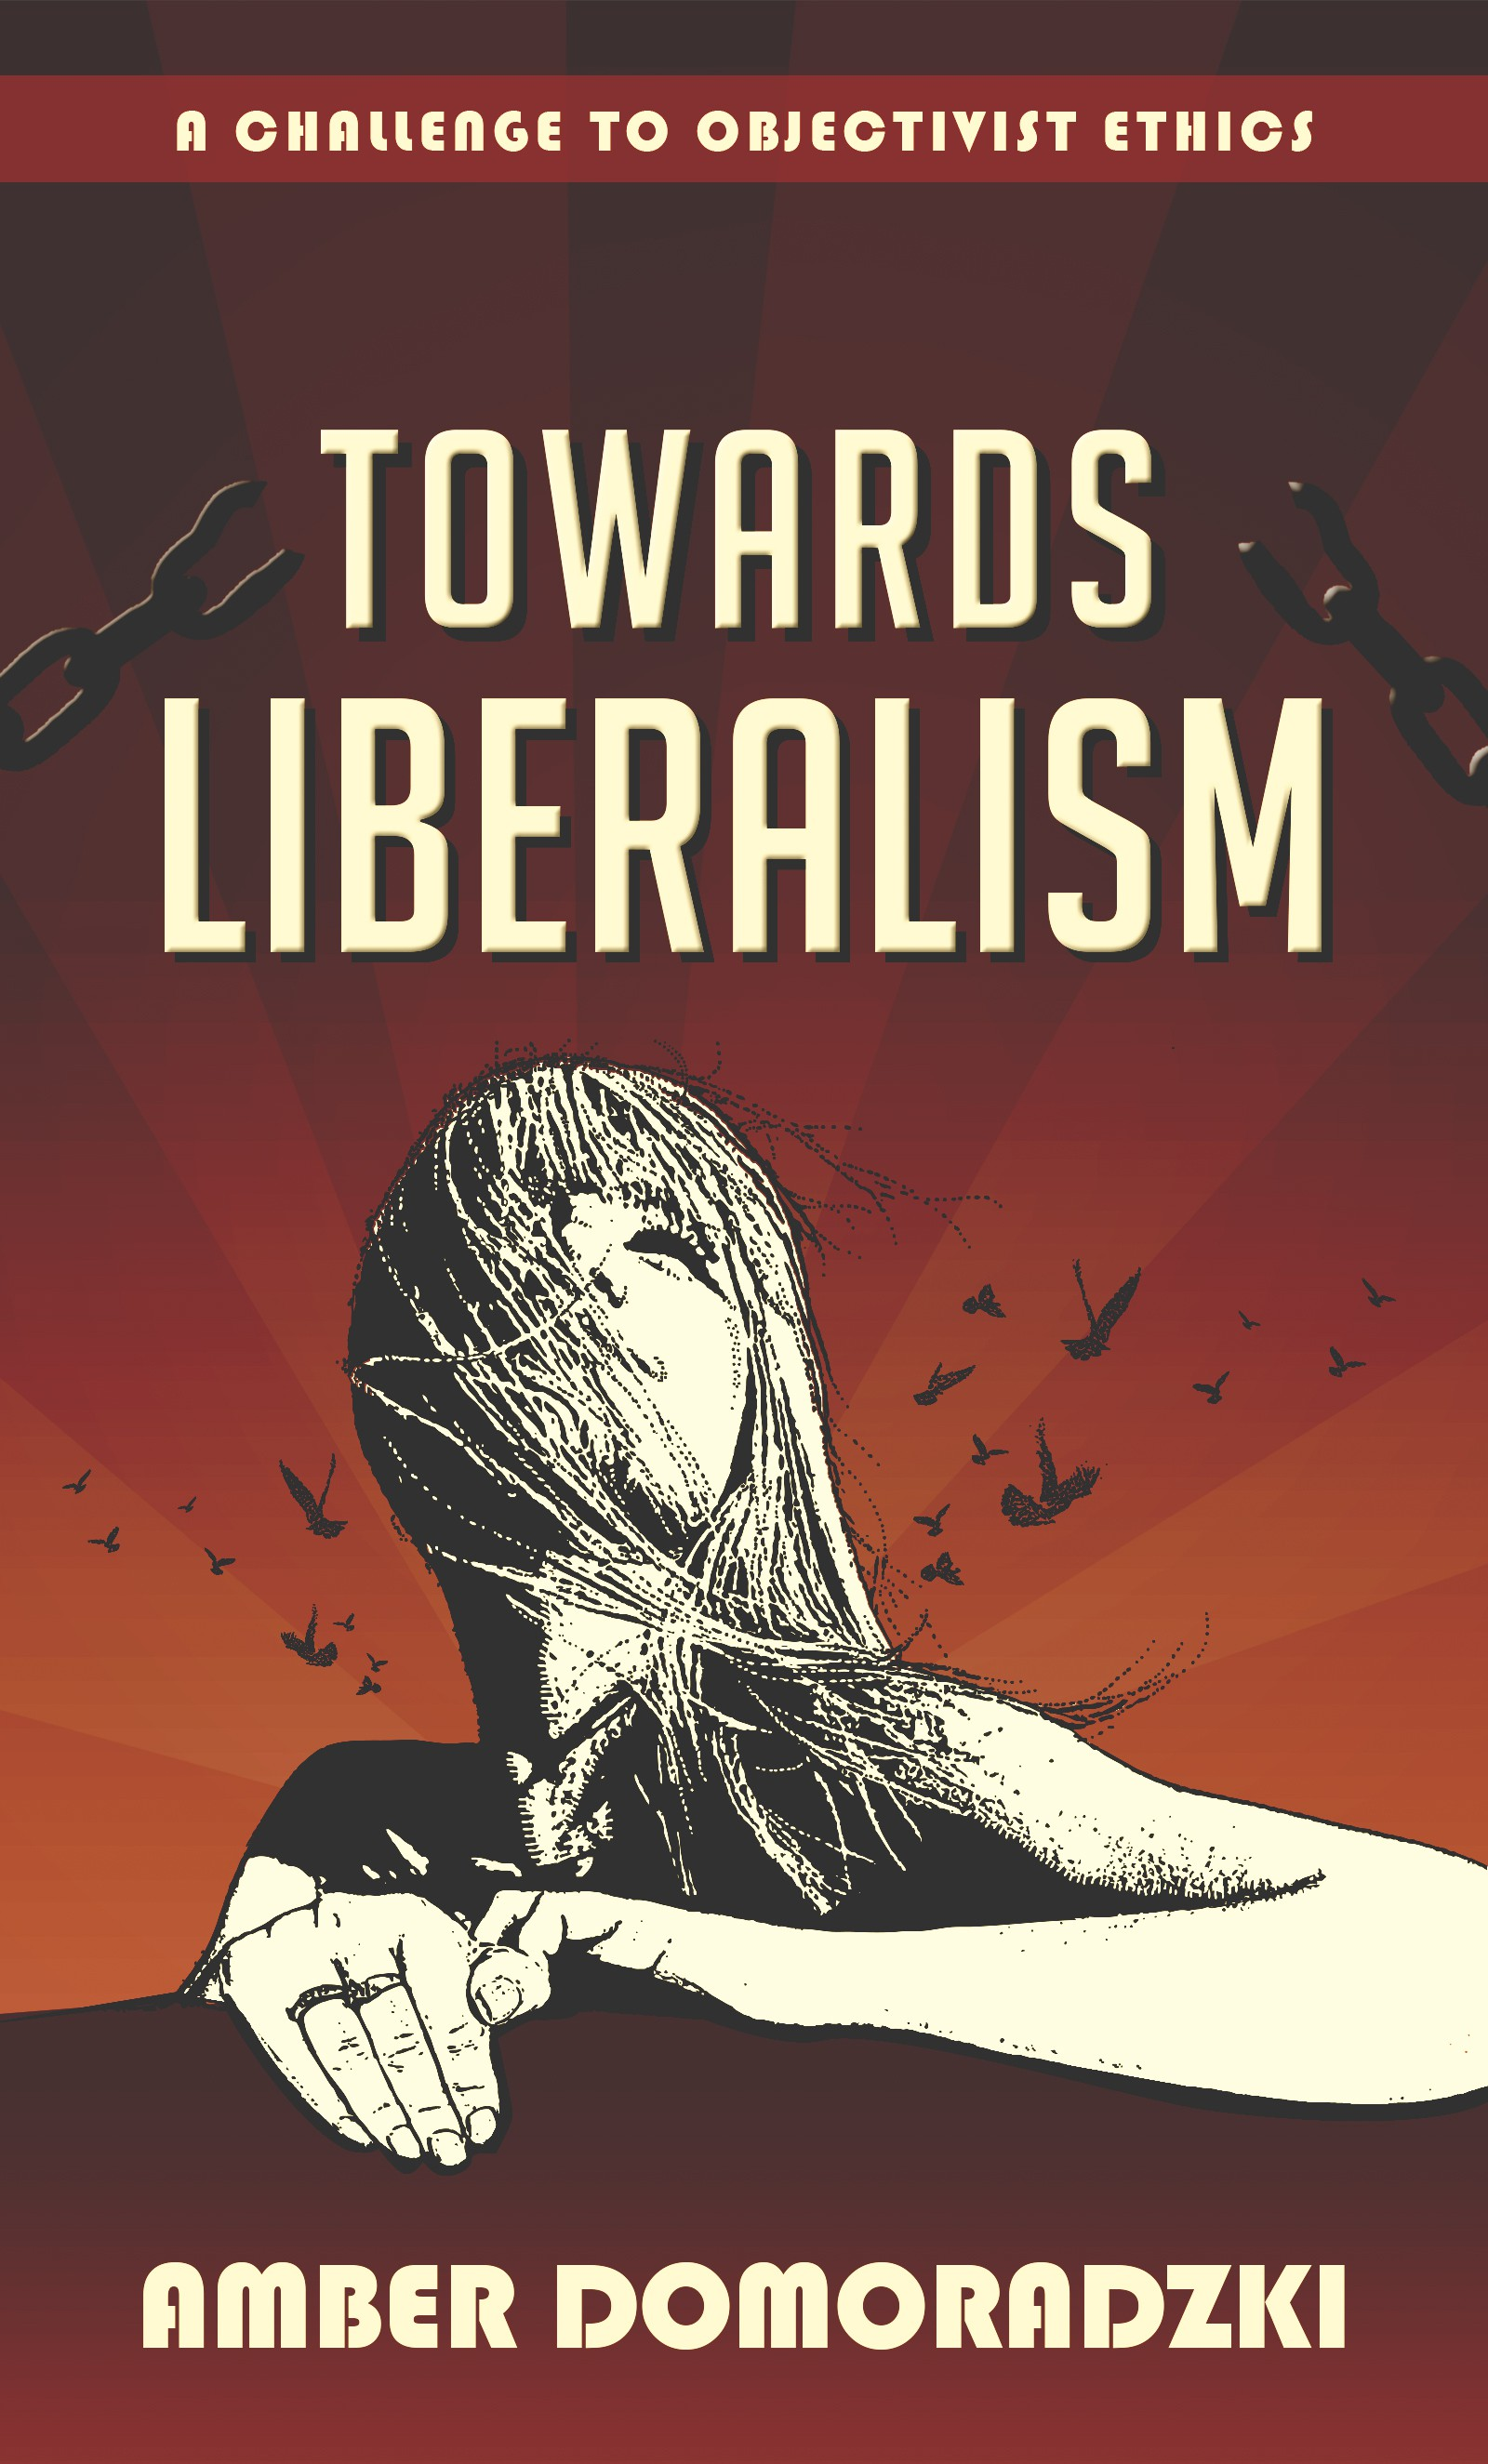 Towards Liberalism: A Challenge to Objectivist Ethics. Woman breaking free from chains